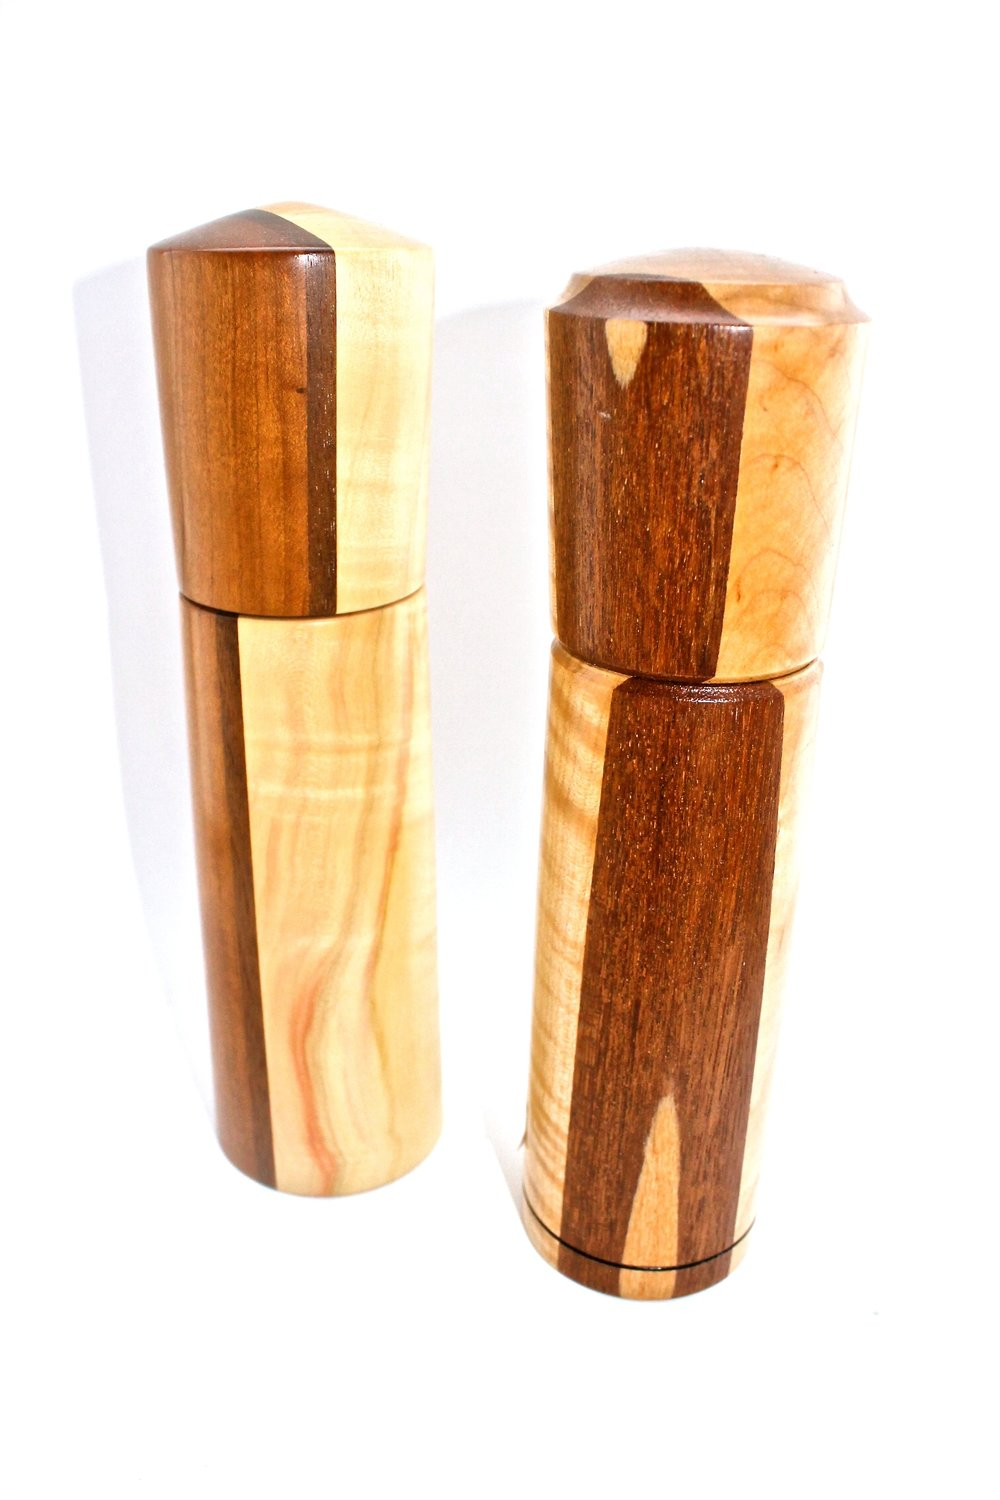 Salt & Pepper Mills